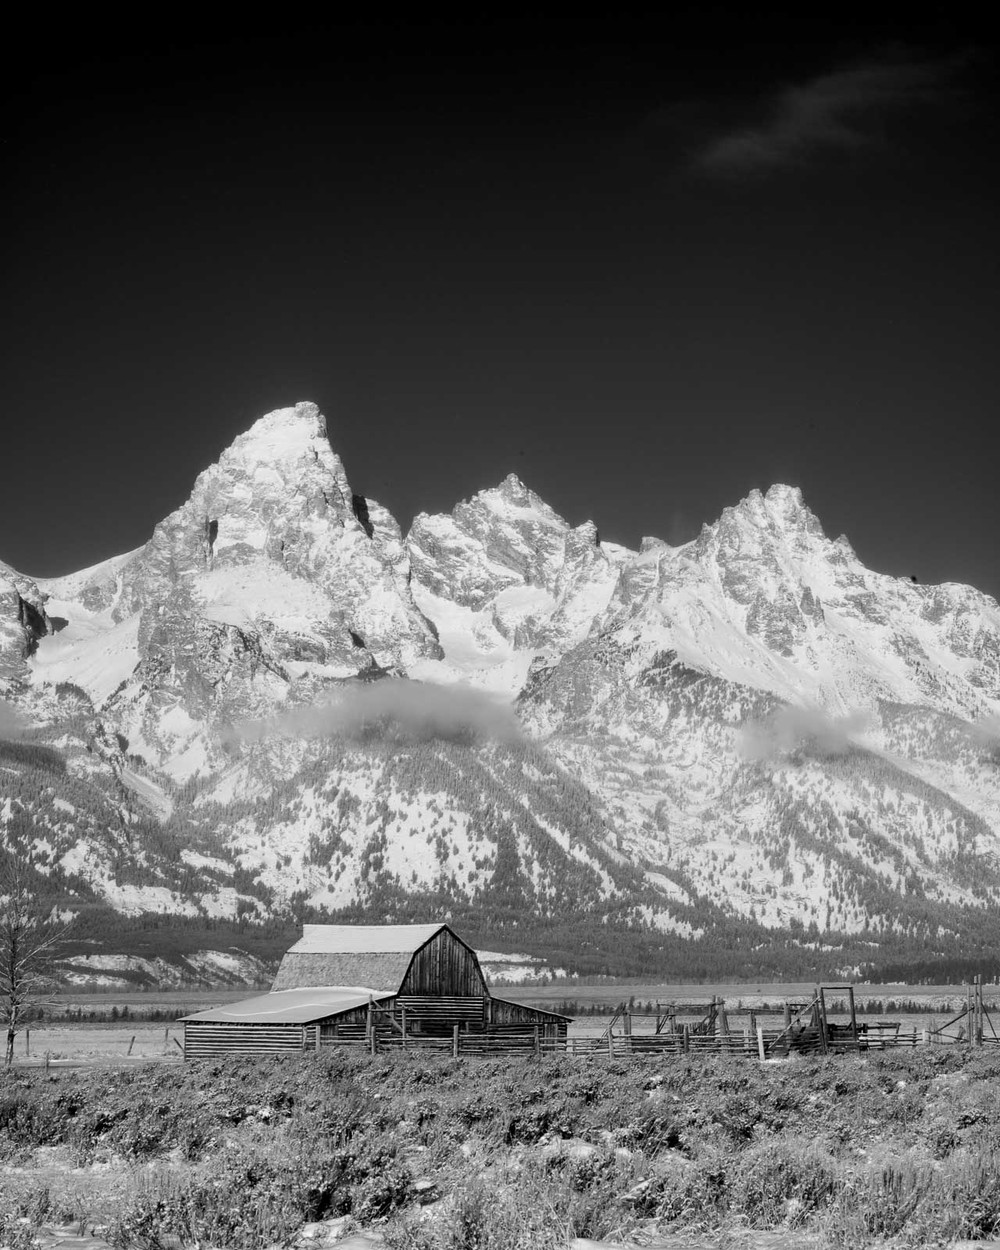 Farmhouse And the Tetons | MM 246 | 35mm Summilux ASPH FLE with Red Filter